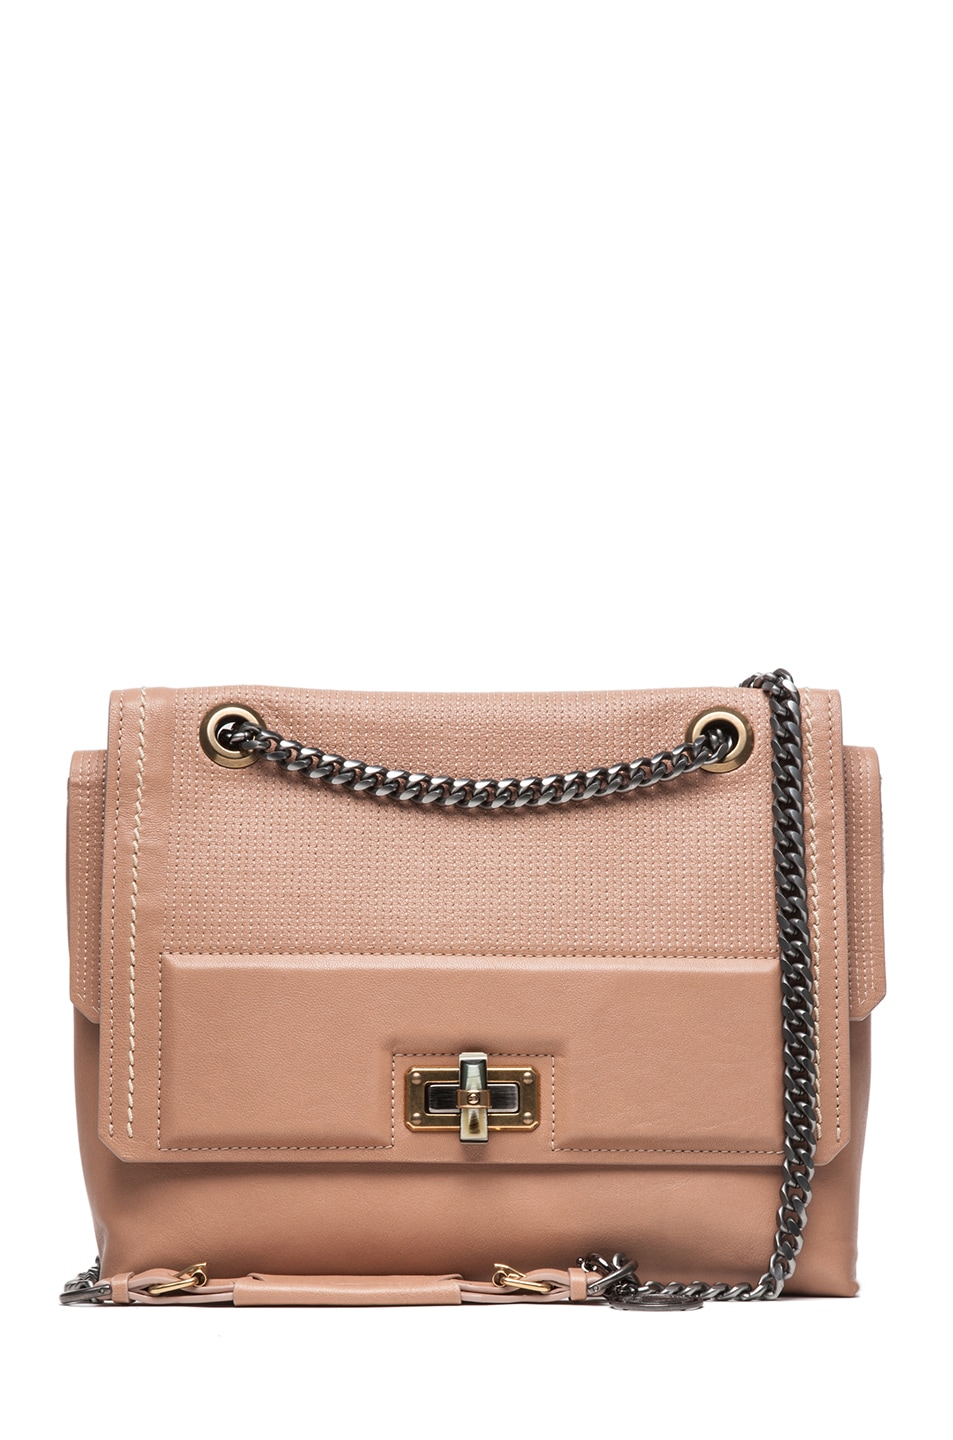 Image 1 of Lanvin Happy Bag in Beige